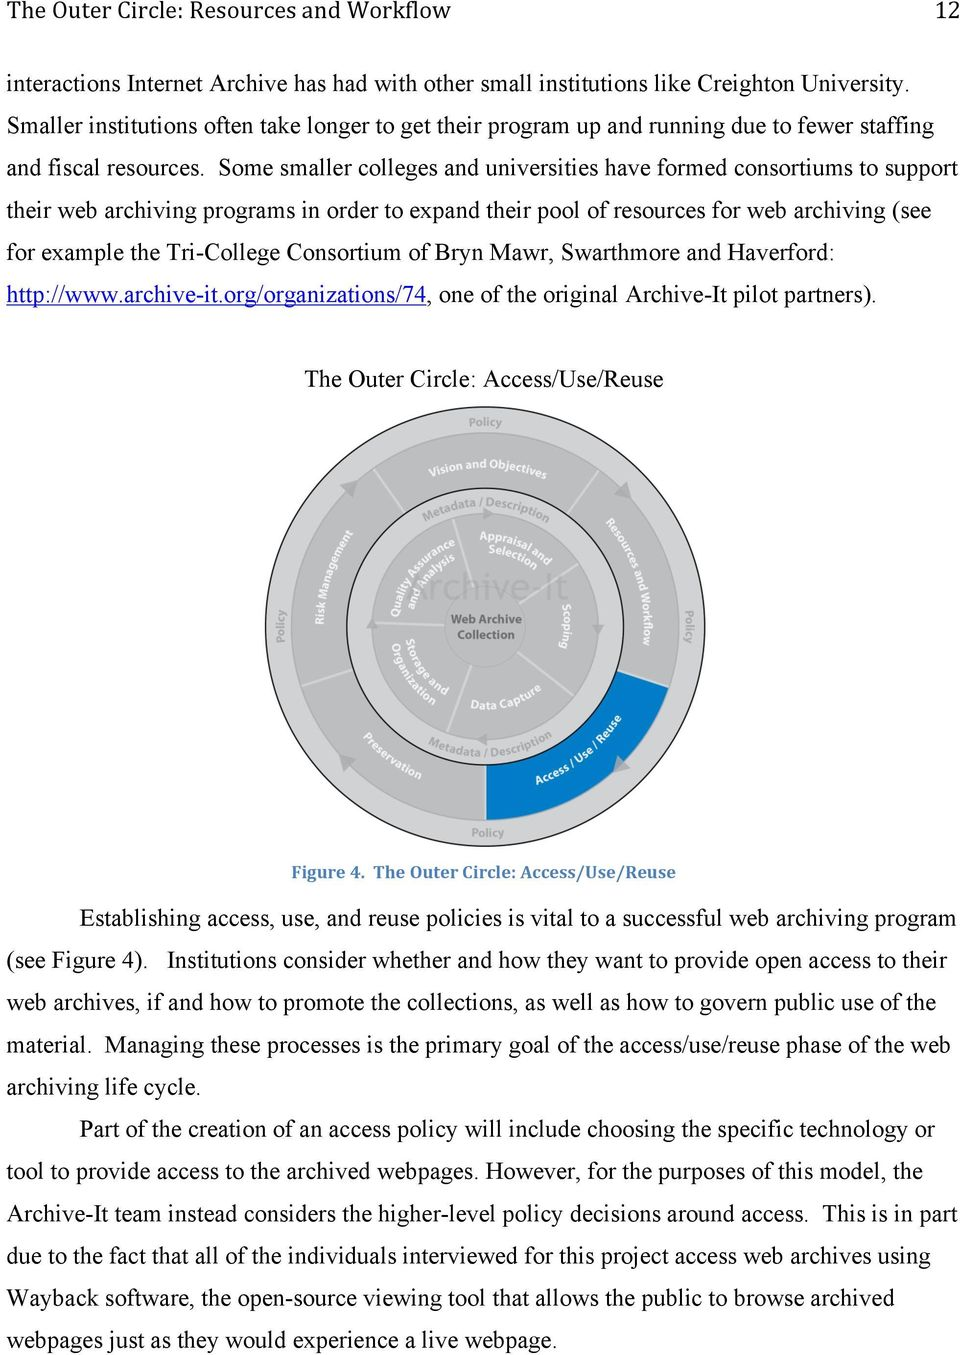 Some smaller colleges and universities have formed consortiums to support their web archiving programs in order to expand their pool of resources for web archiving (see for example the Tri-College